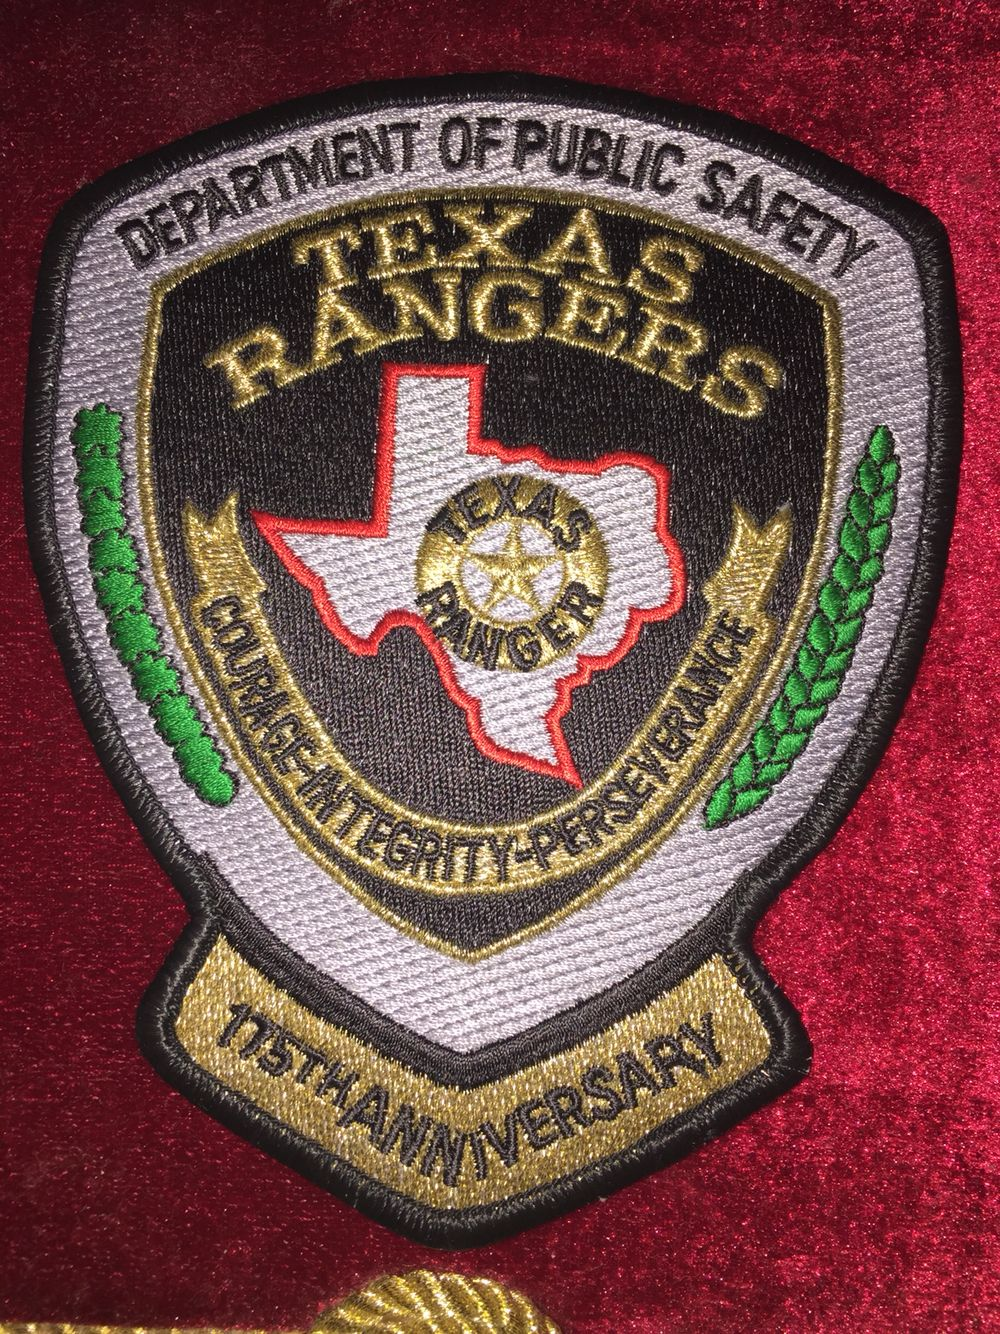 Texas department of public safety Texas Ranger patch